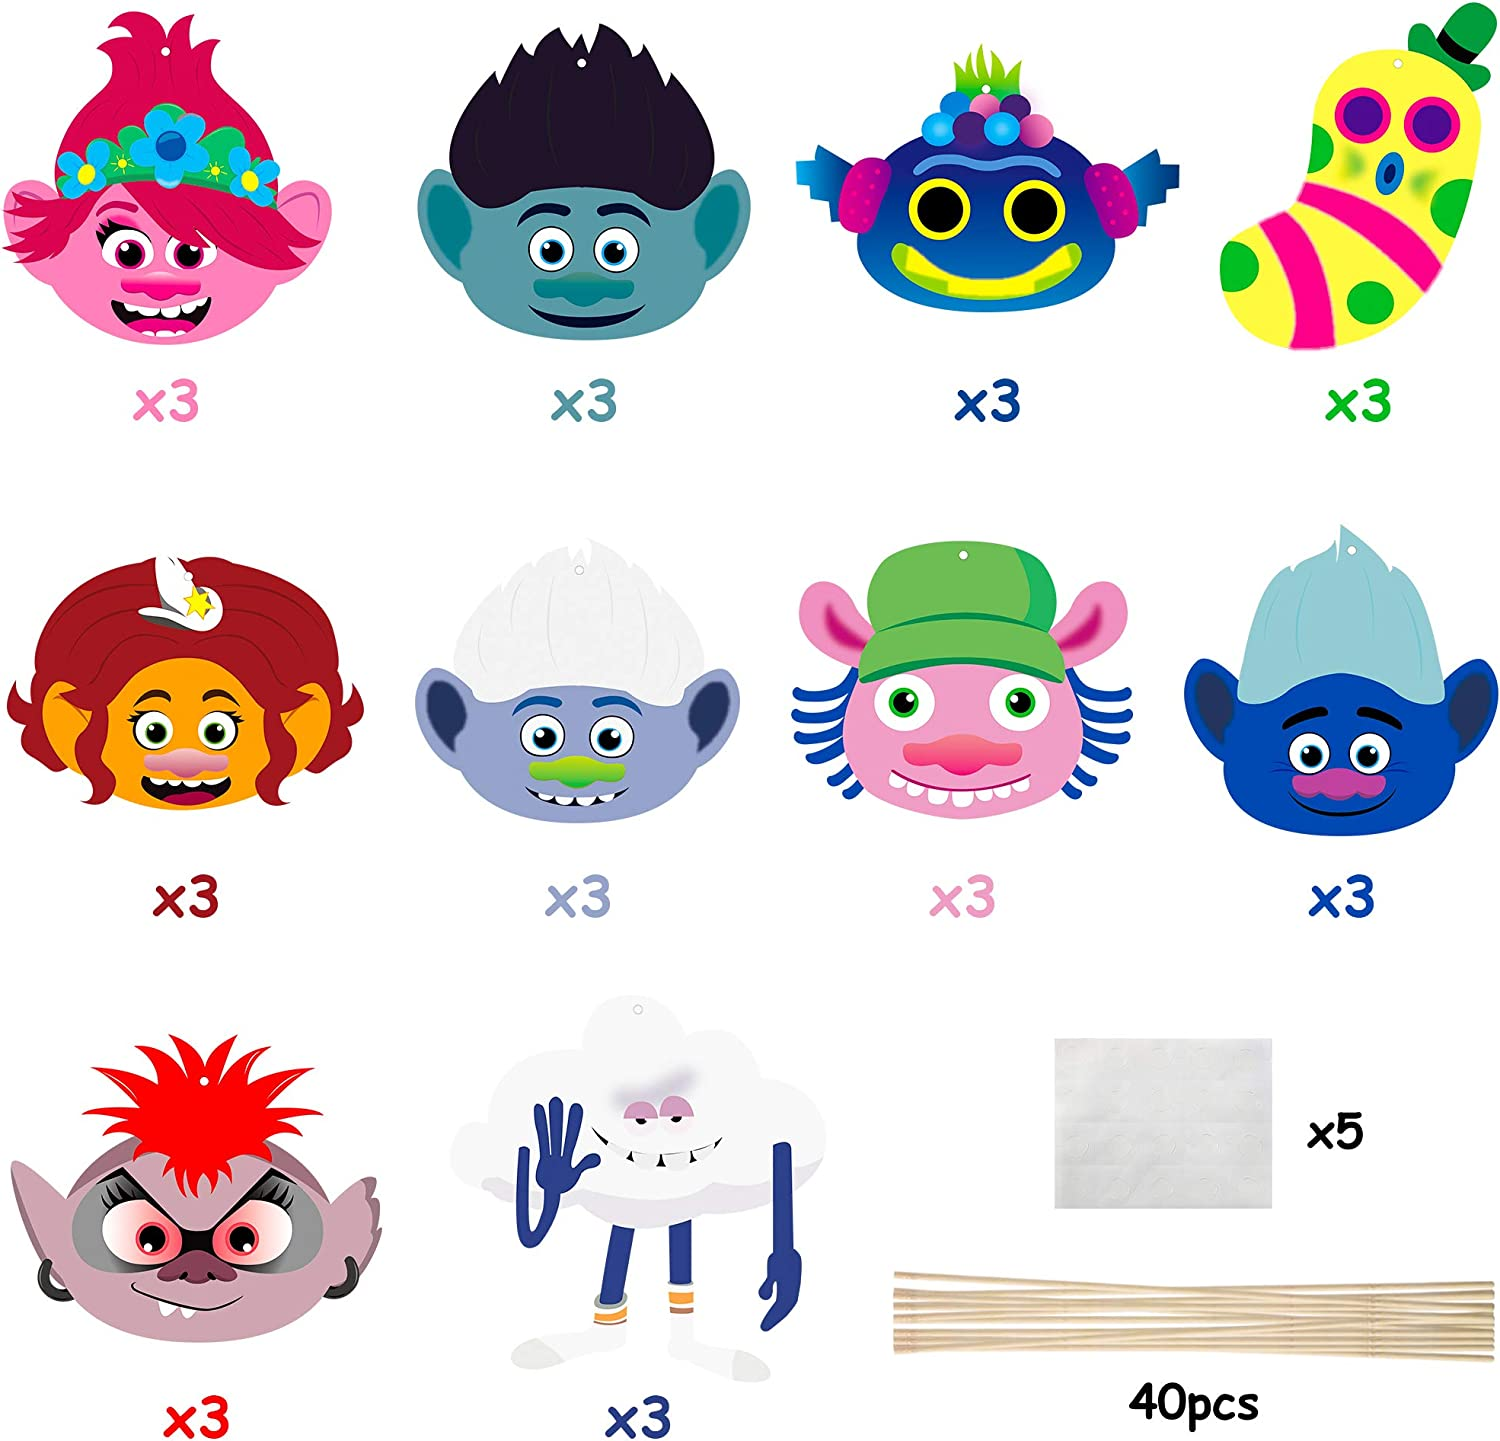 ANGOLIO 30Pack Trolls Paper Card Centerpiece Kit Table Toppers Paper World Tour Themed Birthday Party Favor Decorations Baby Shower Desk Topper Party Supplies for Kids Adults